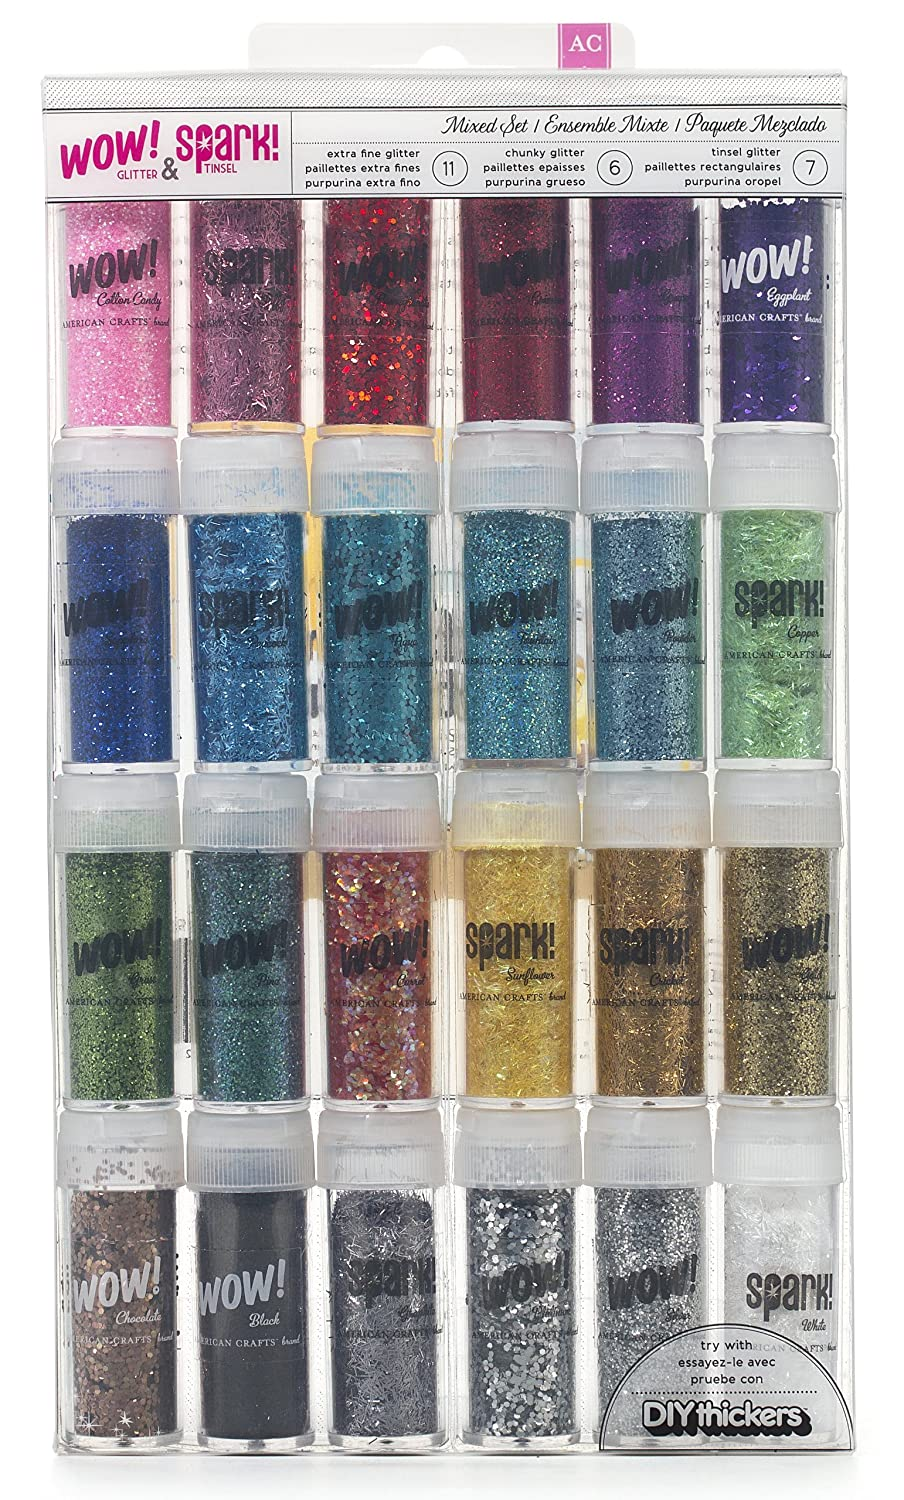 Wow! & Spark! Mixed Glitter Pack by American Crafts | 24-pack | Includes 11 bottles extra fine glitter, 6 bottles chunky glitter and 7 bottles tinsel glitter in various colors Inc. 27393